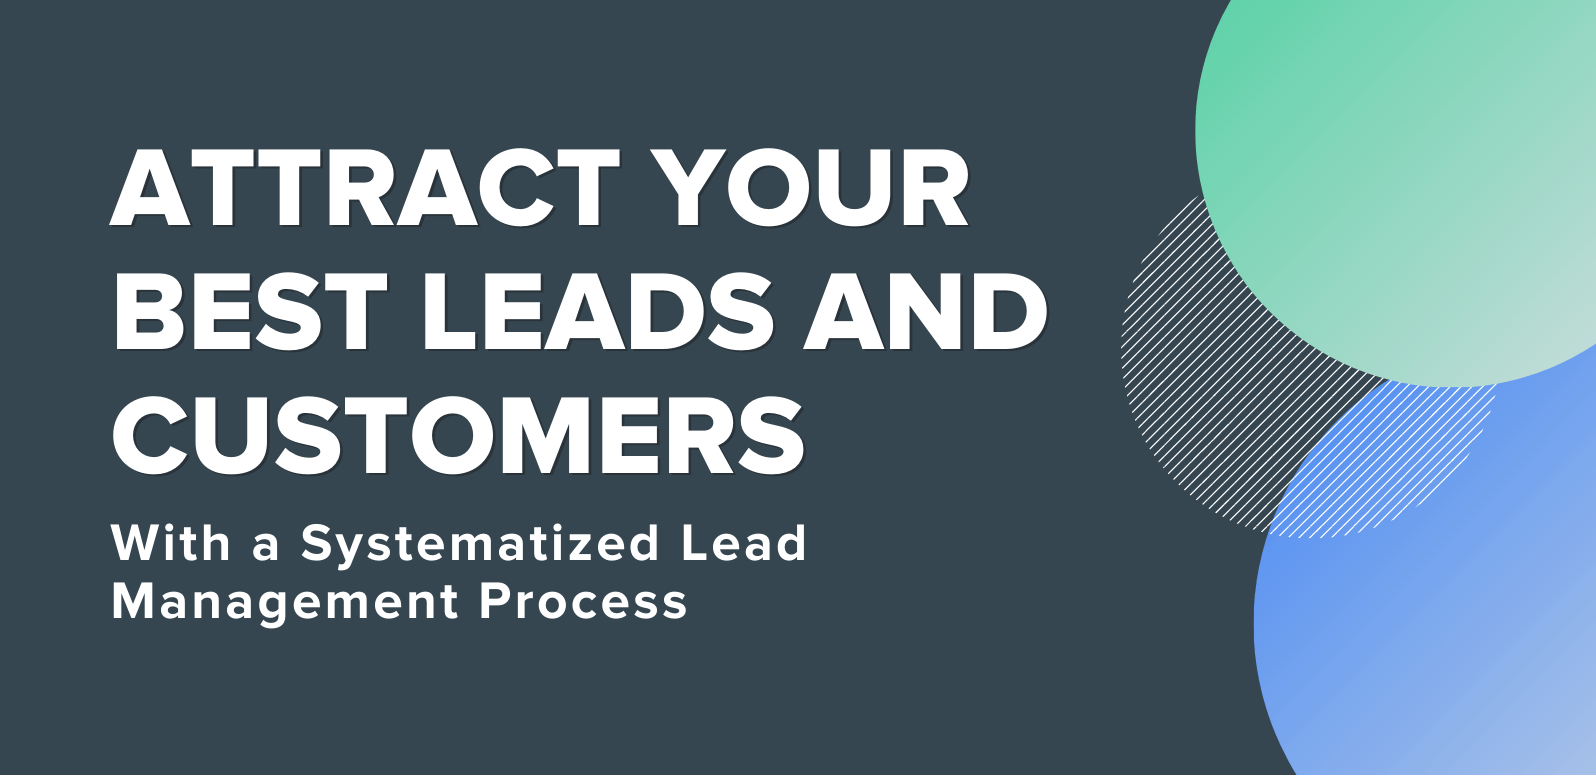 Don't Fire Your Real Estate Clients: Attract Your Best Leads and Customers With a Systematized Lead Management Process